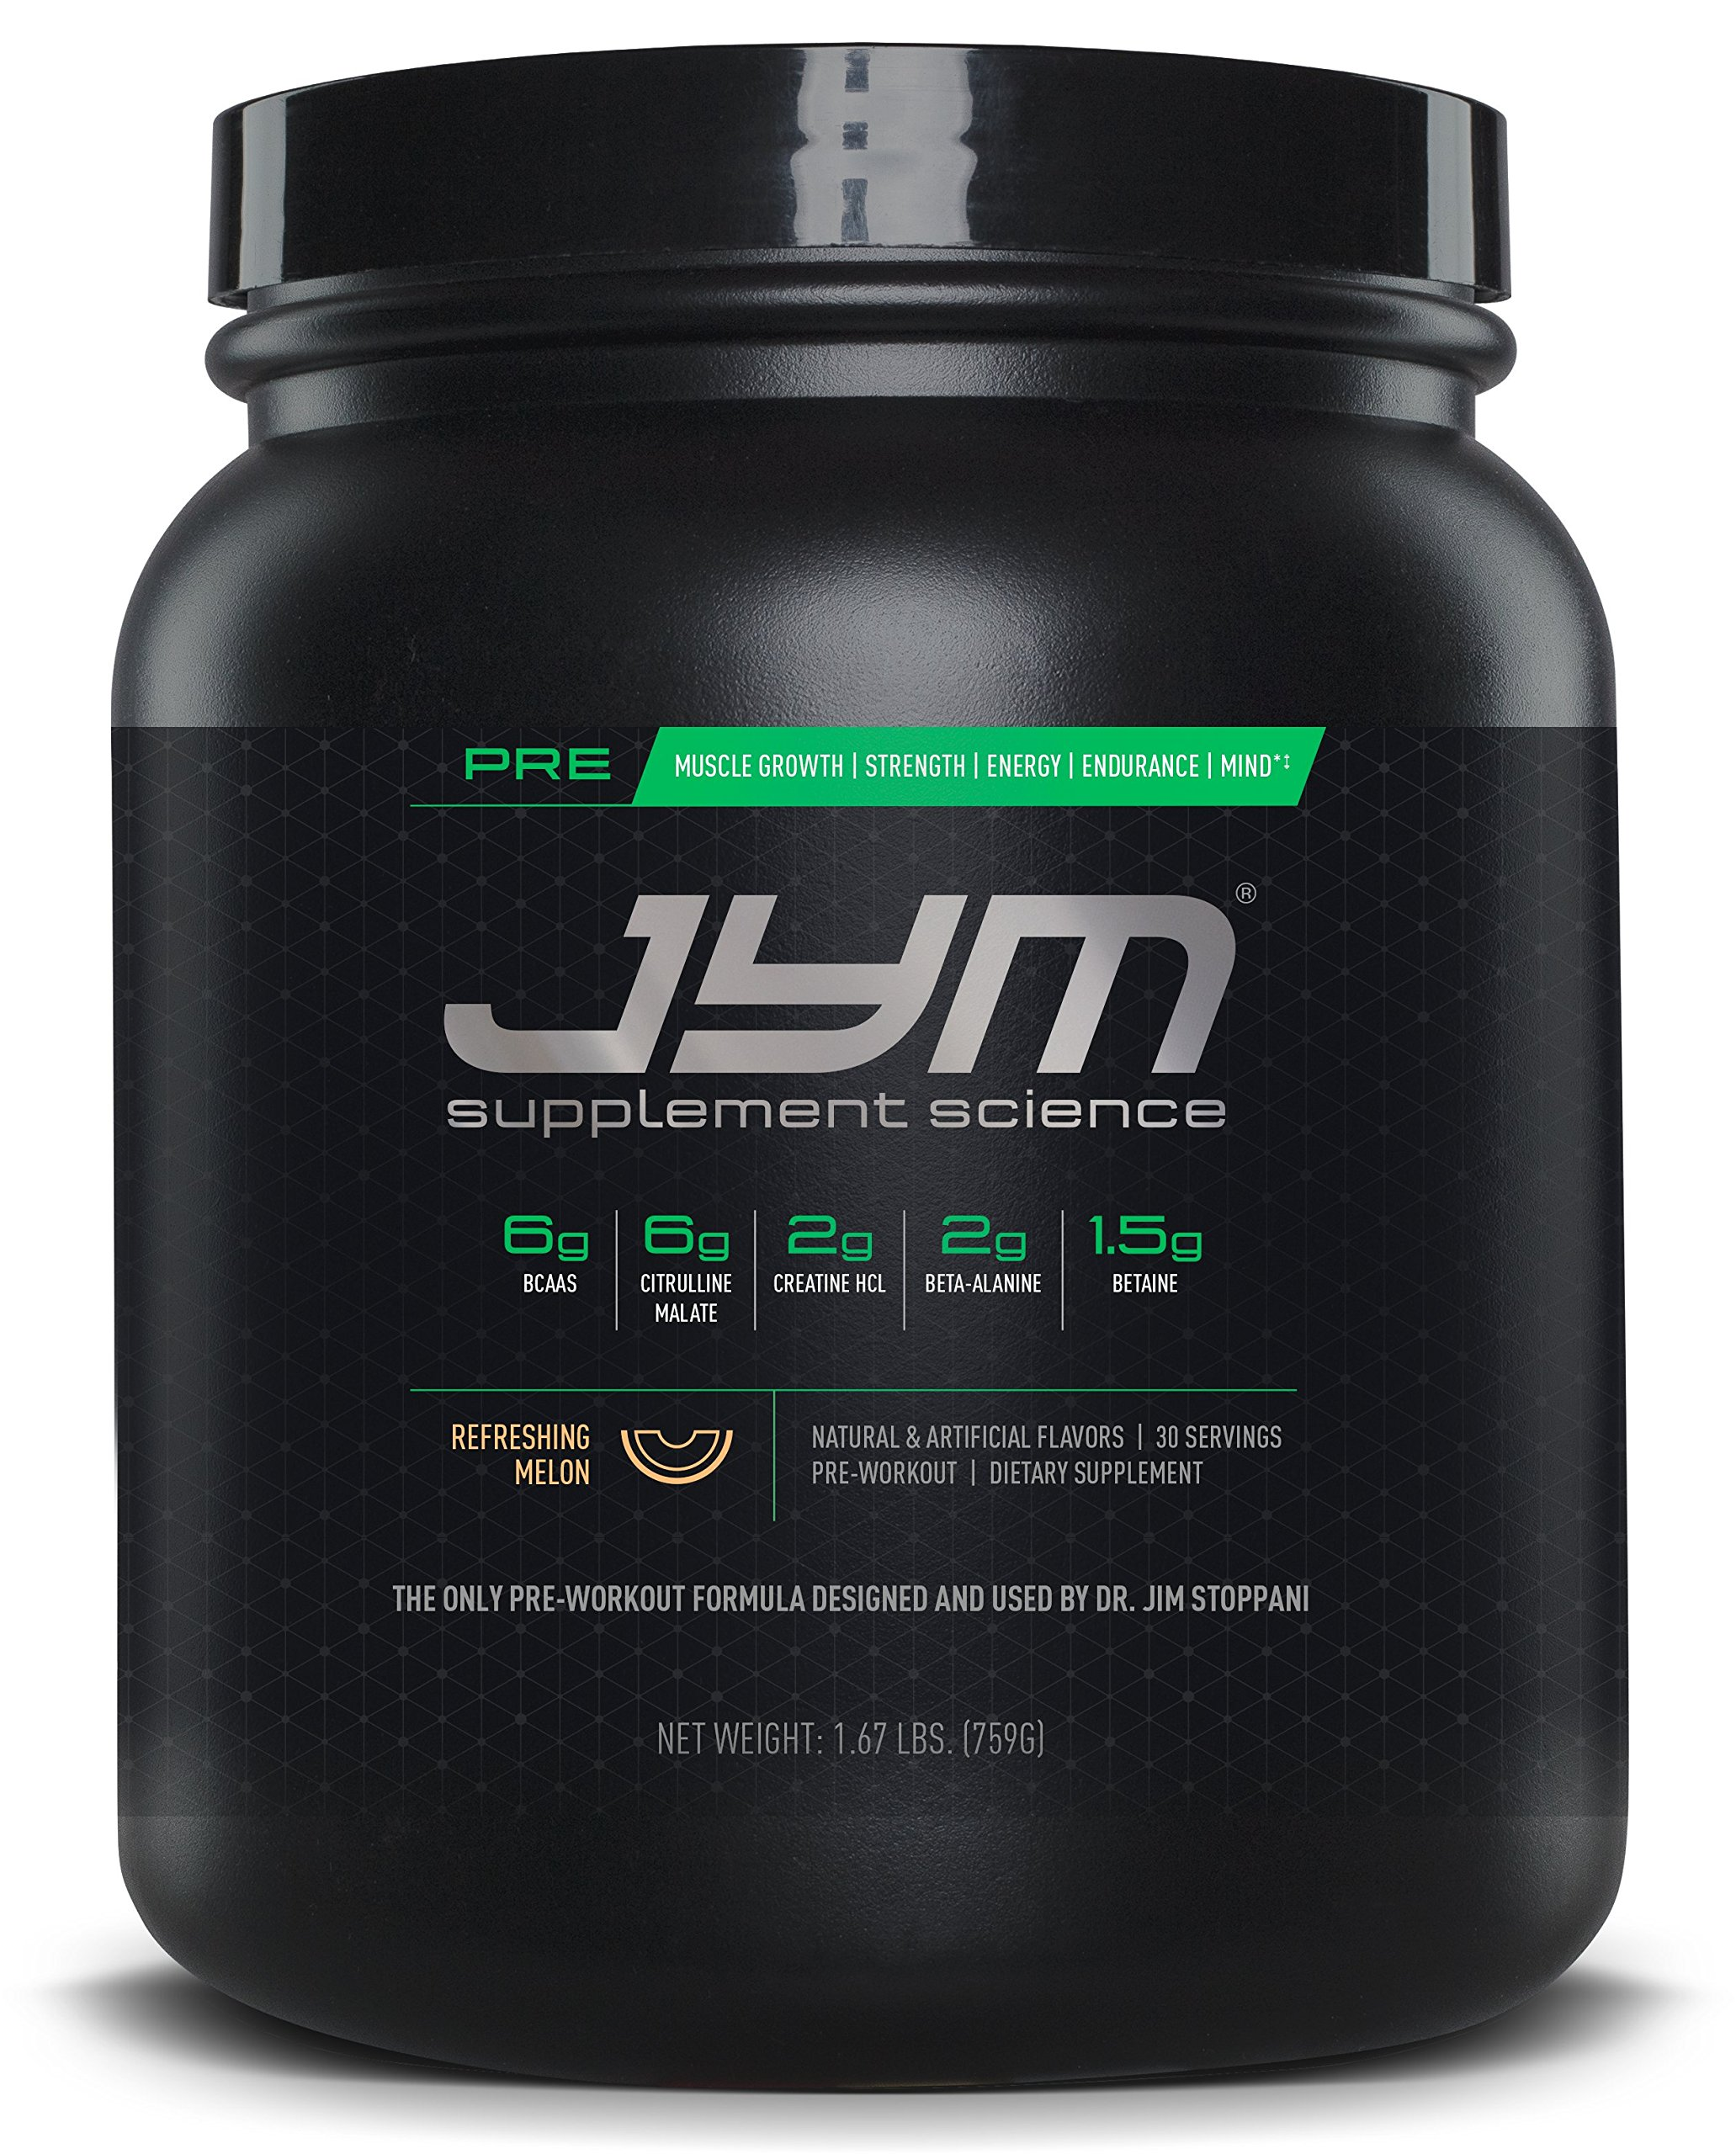 JYM Supplement Science, PRE JYM, Pre-Workout with BCAA's, Creatine HCI, Citrulline Malate, Beta-alanine, Betaine, Alpha-GPC, Beet Root Extract and more, Refreshing Melon, 30 Servings